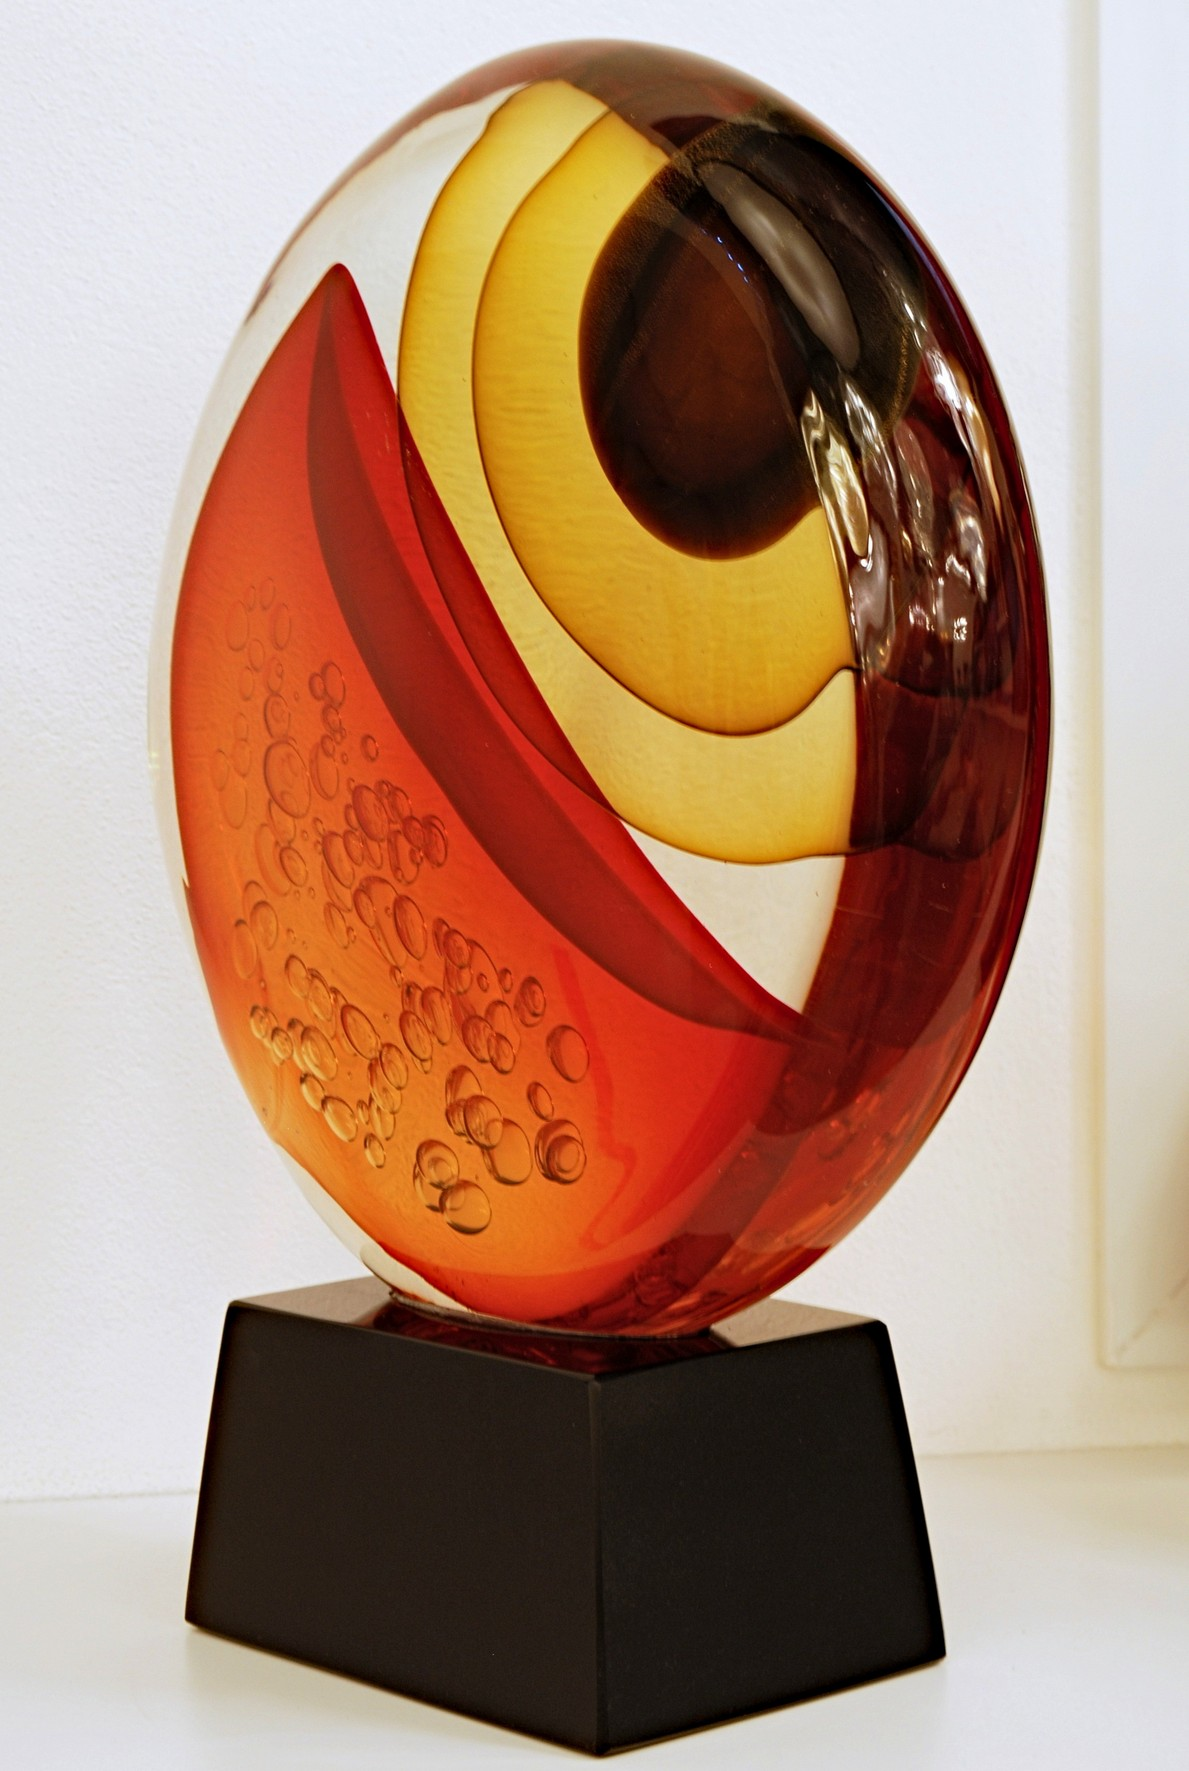 Stefano Toso Abstract Murano Glass Sculpture Warm Colors